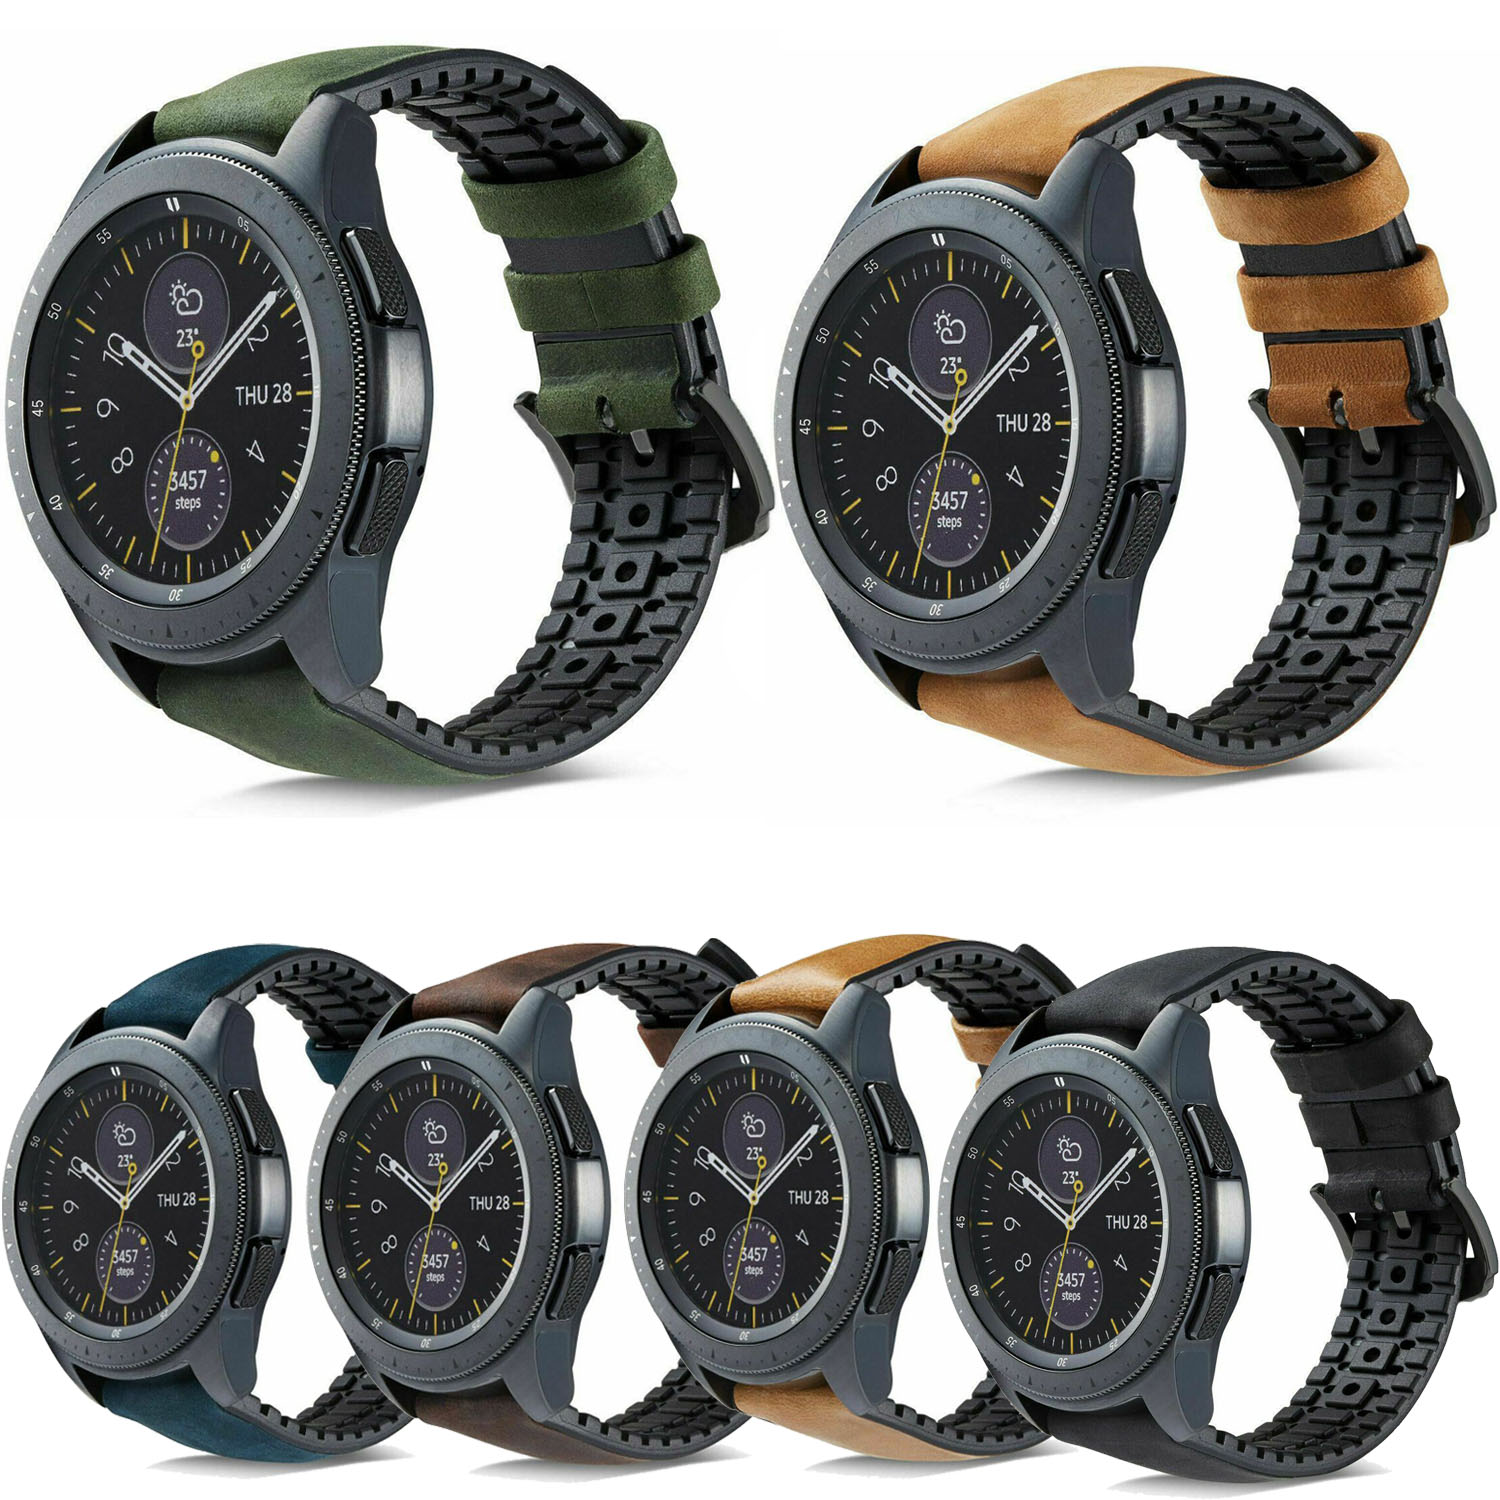 Silicone Leather Strap For Samsung Galaxy Watch 42mm 46mm Band For Gear S2 S3 Classic Frontier Band for Huawei Watch GT StrapSilicone Leather Strap For Samsung Galaxy Watch 42mm 46mm Band For Gear S2 S3 Classic Frontier Band for Huawei Watch GT Strap